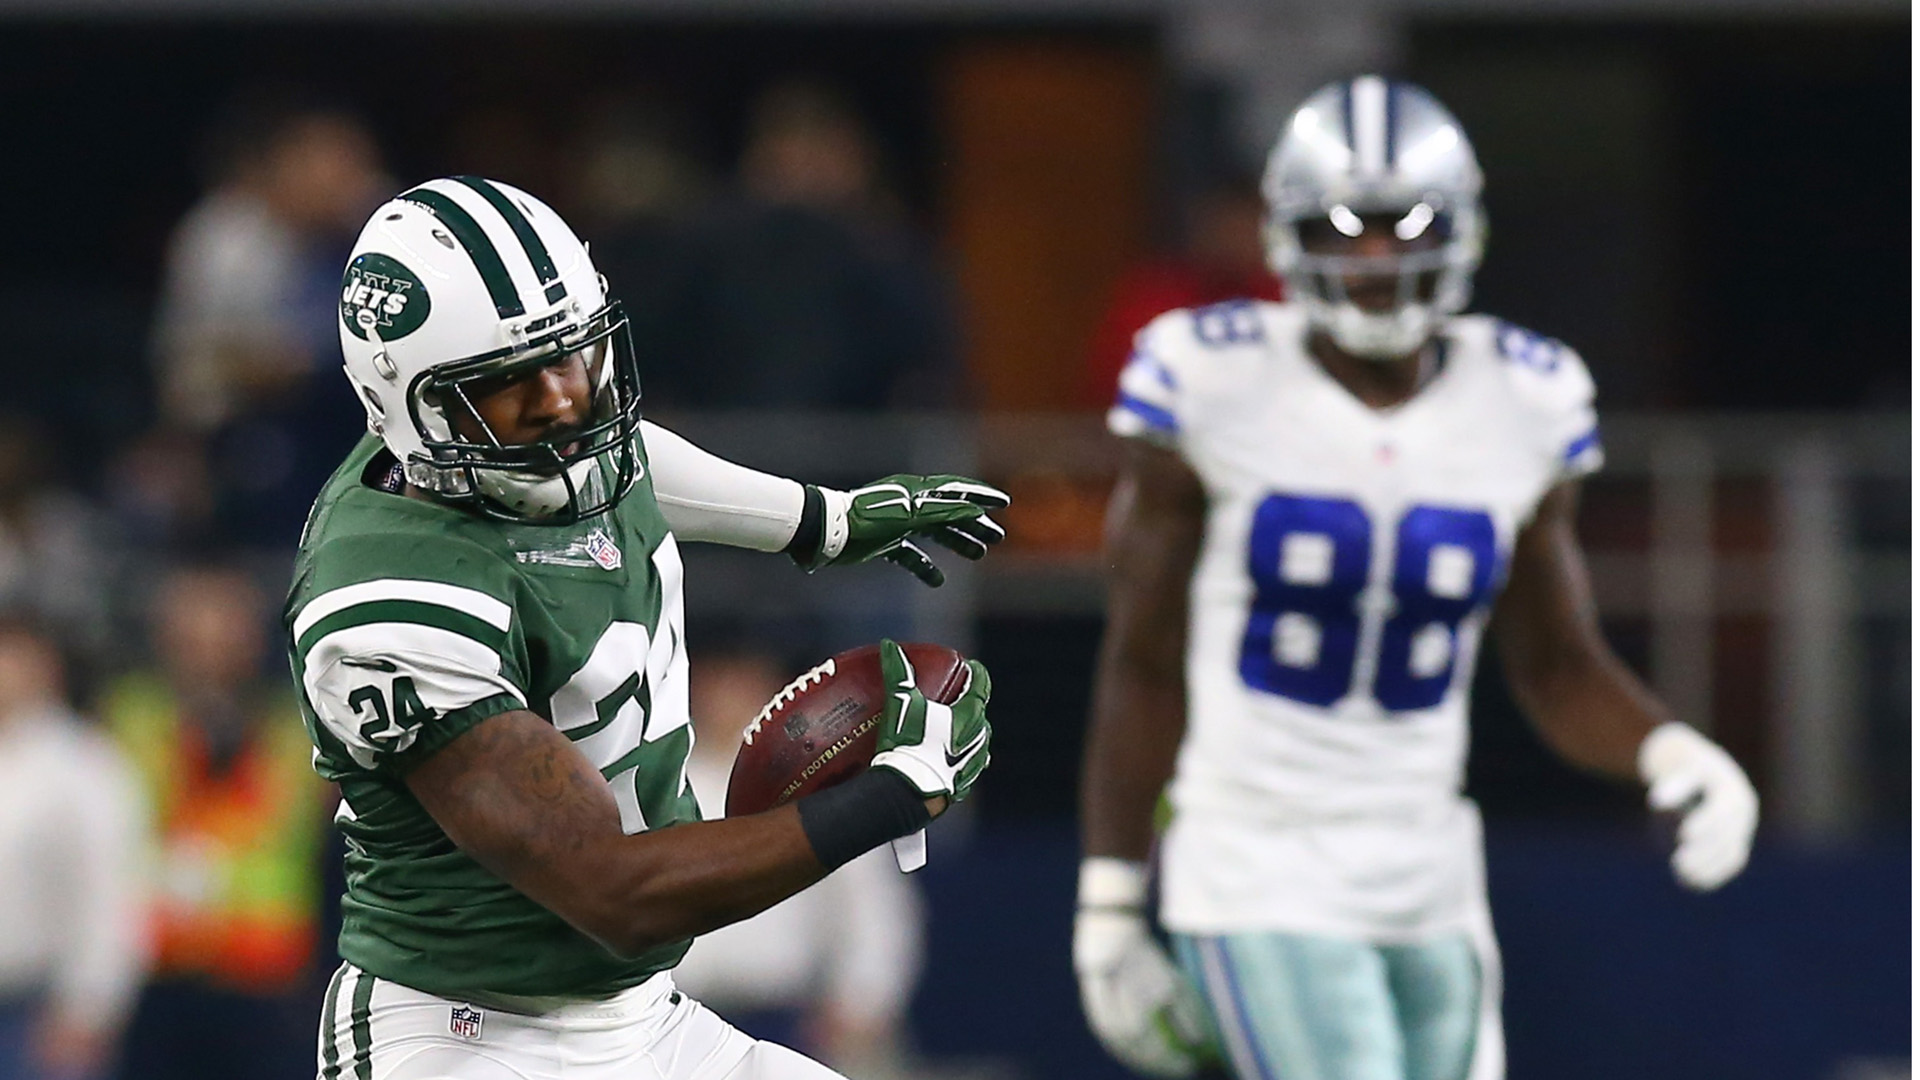 Dez Bryant recruits Darrelle Revis in tweet